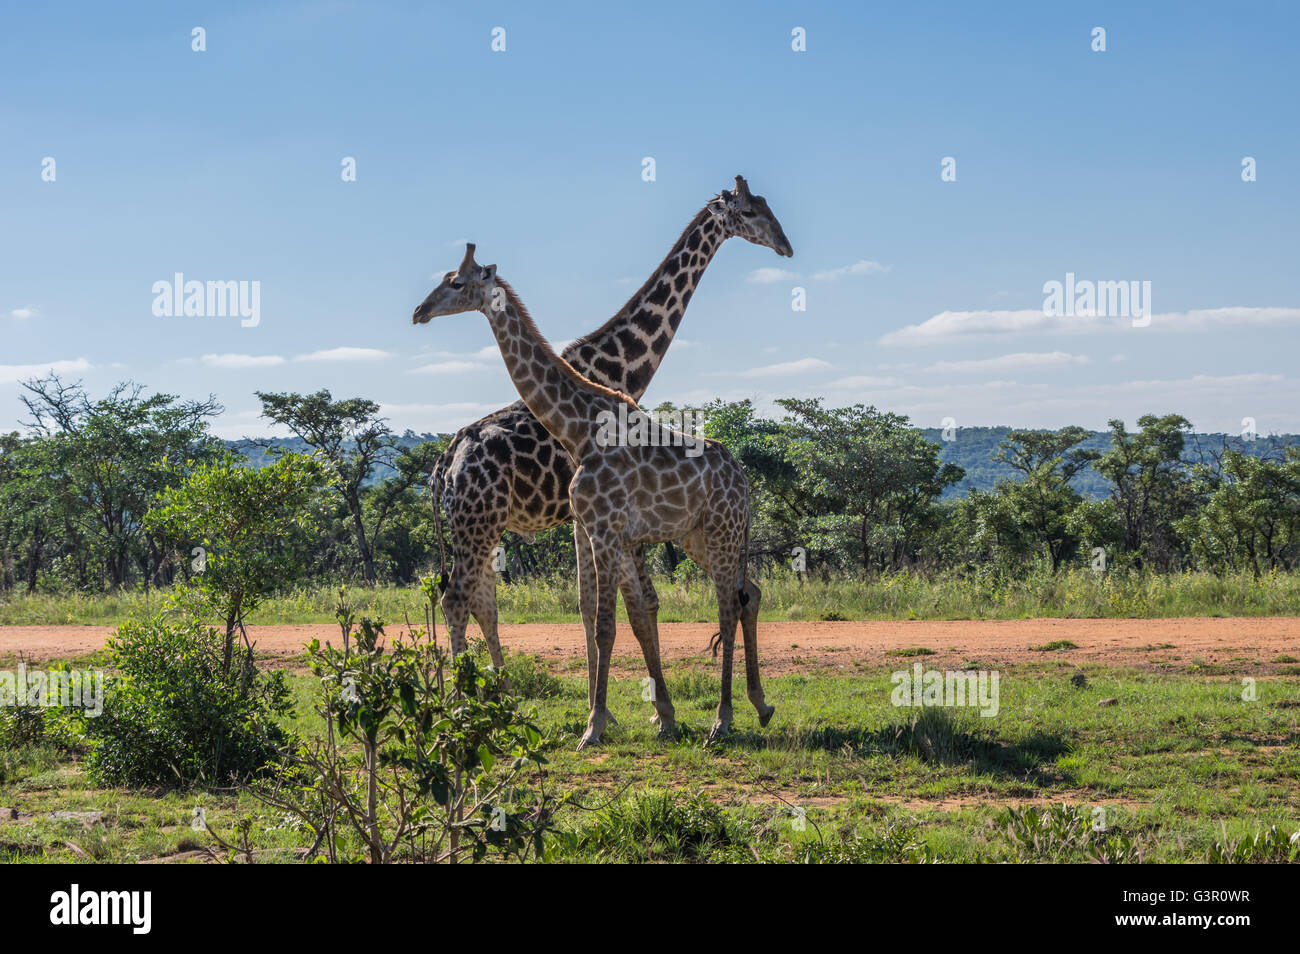 Giraffe teaching her offspring to fight in the Welgevonden Game Reserve in South Africa - Stock Image